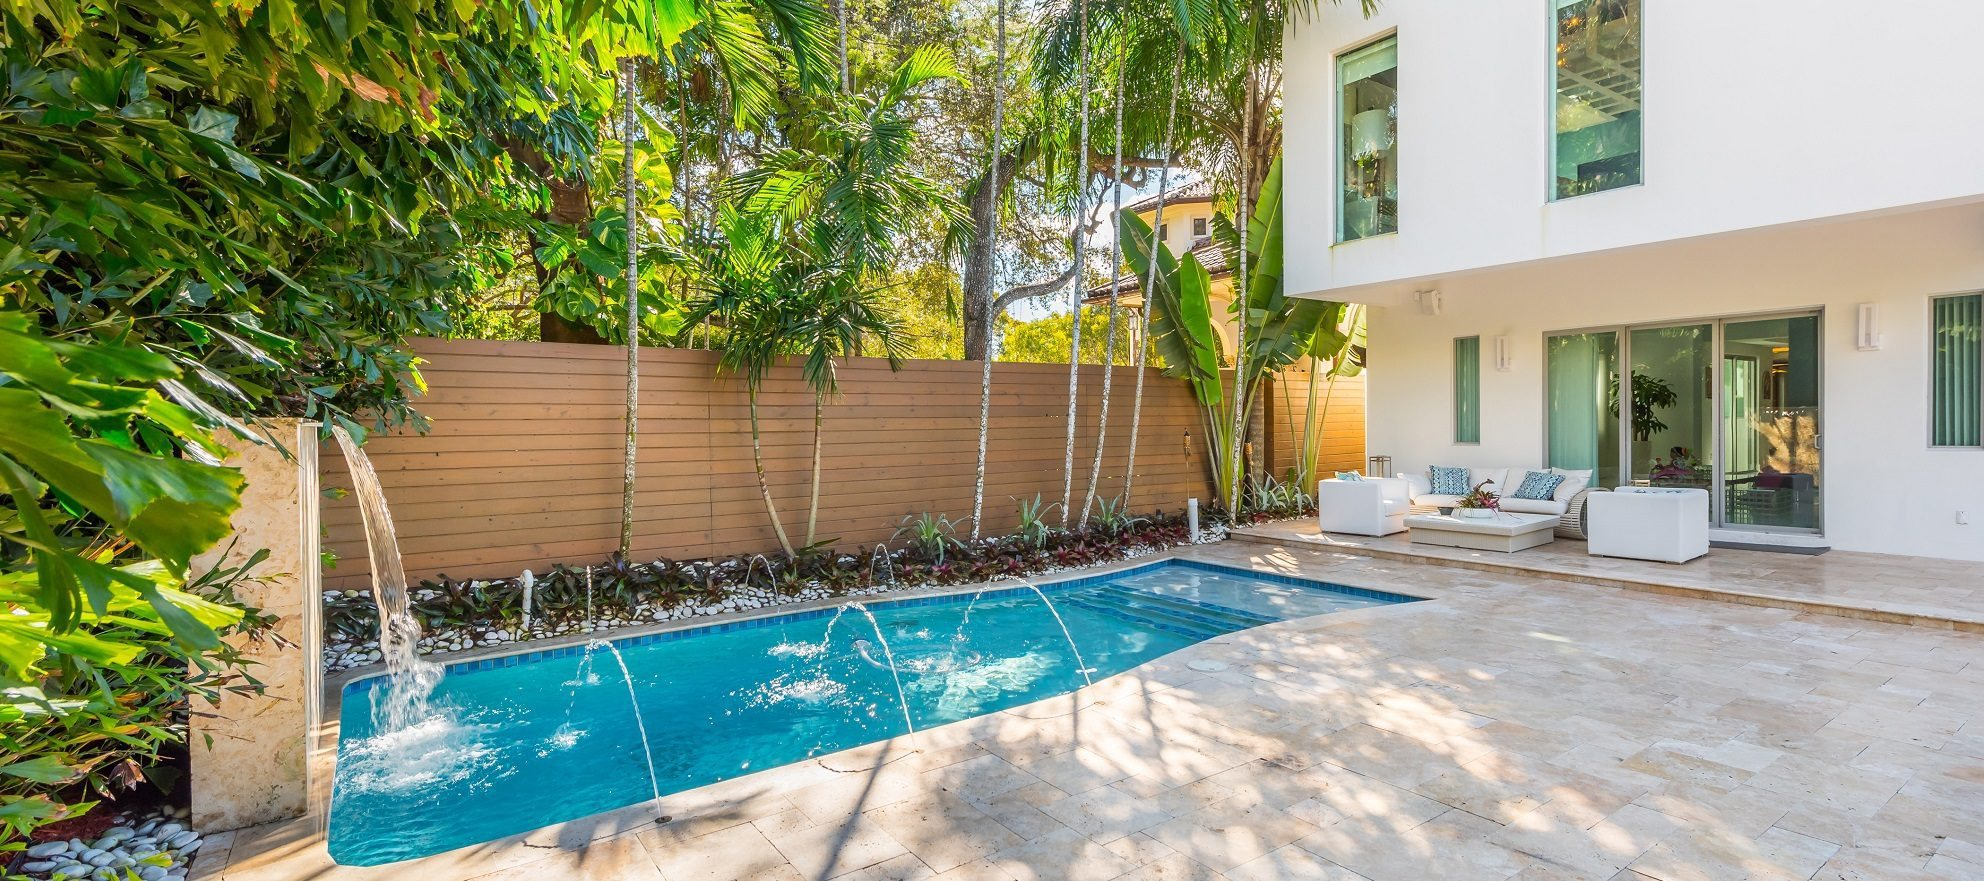 Luxury listing: tropical oasis in the center of Miami